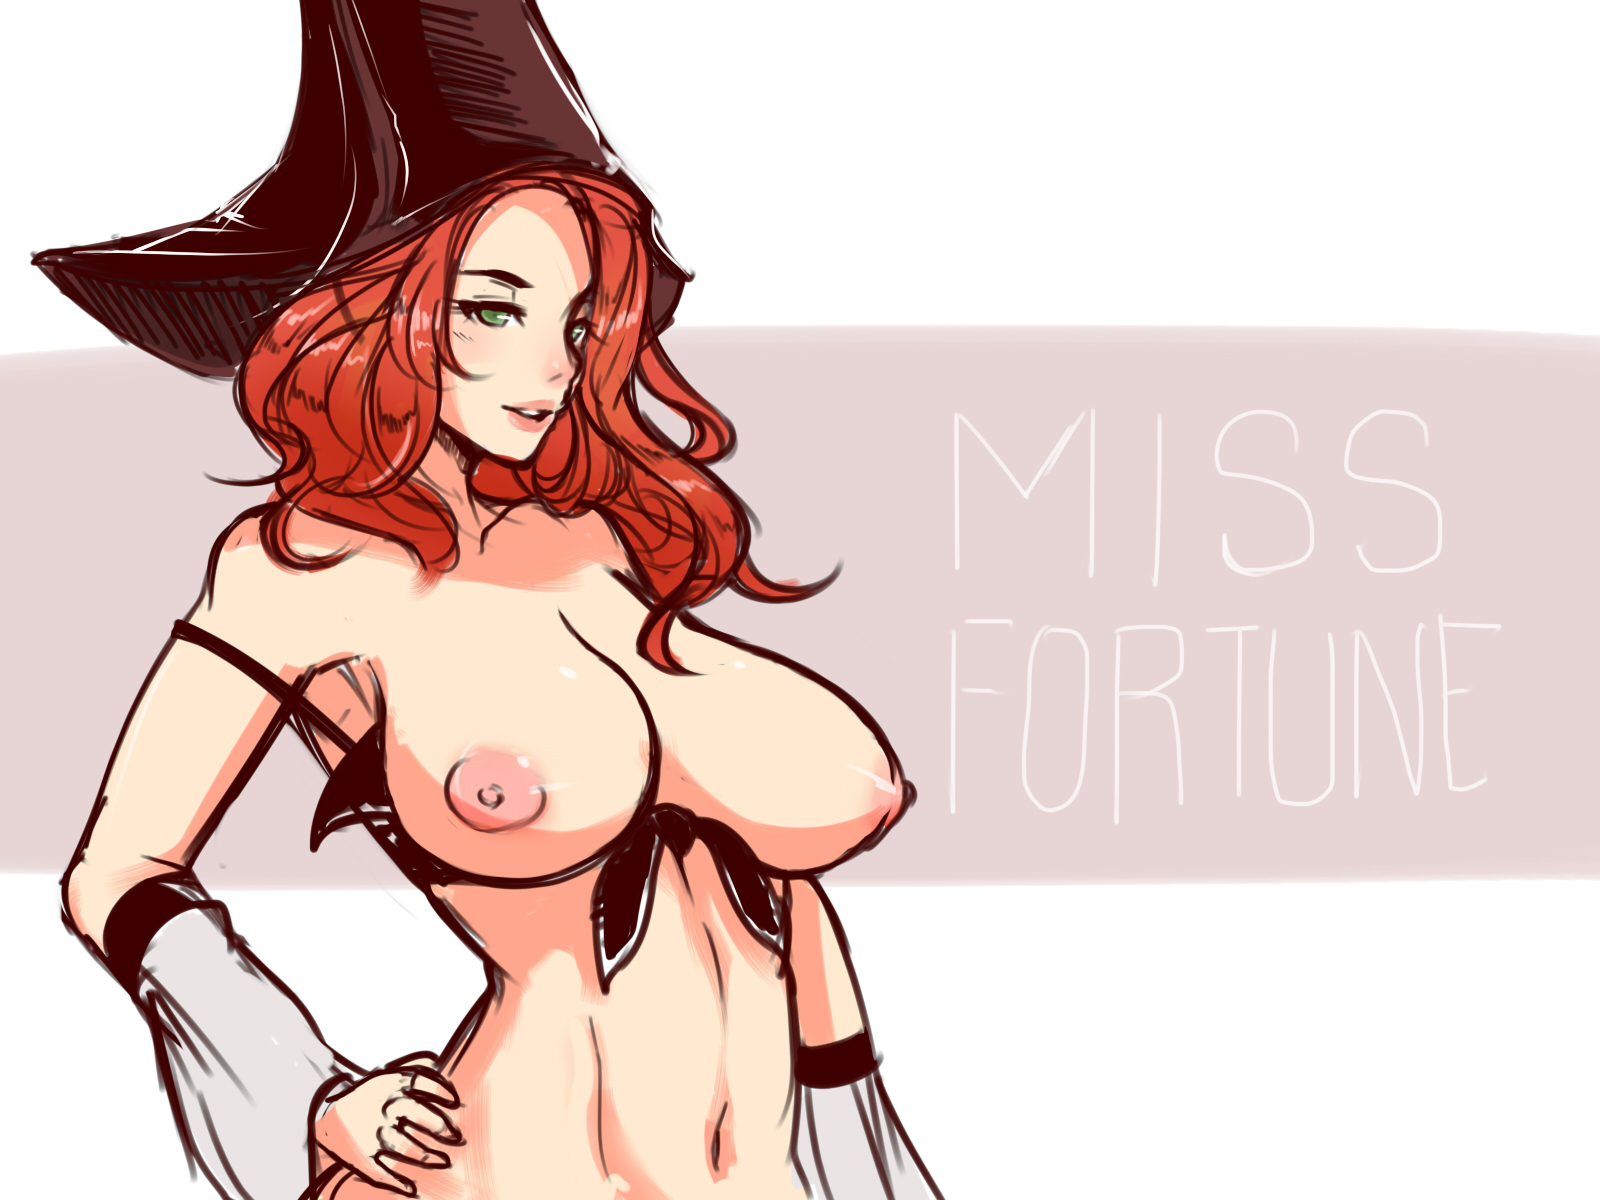 3260706 - League_of_Legends Miss_Fortune Tinnies